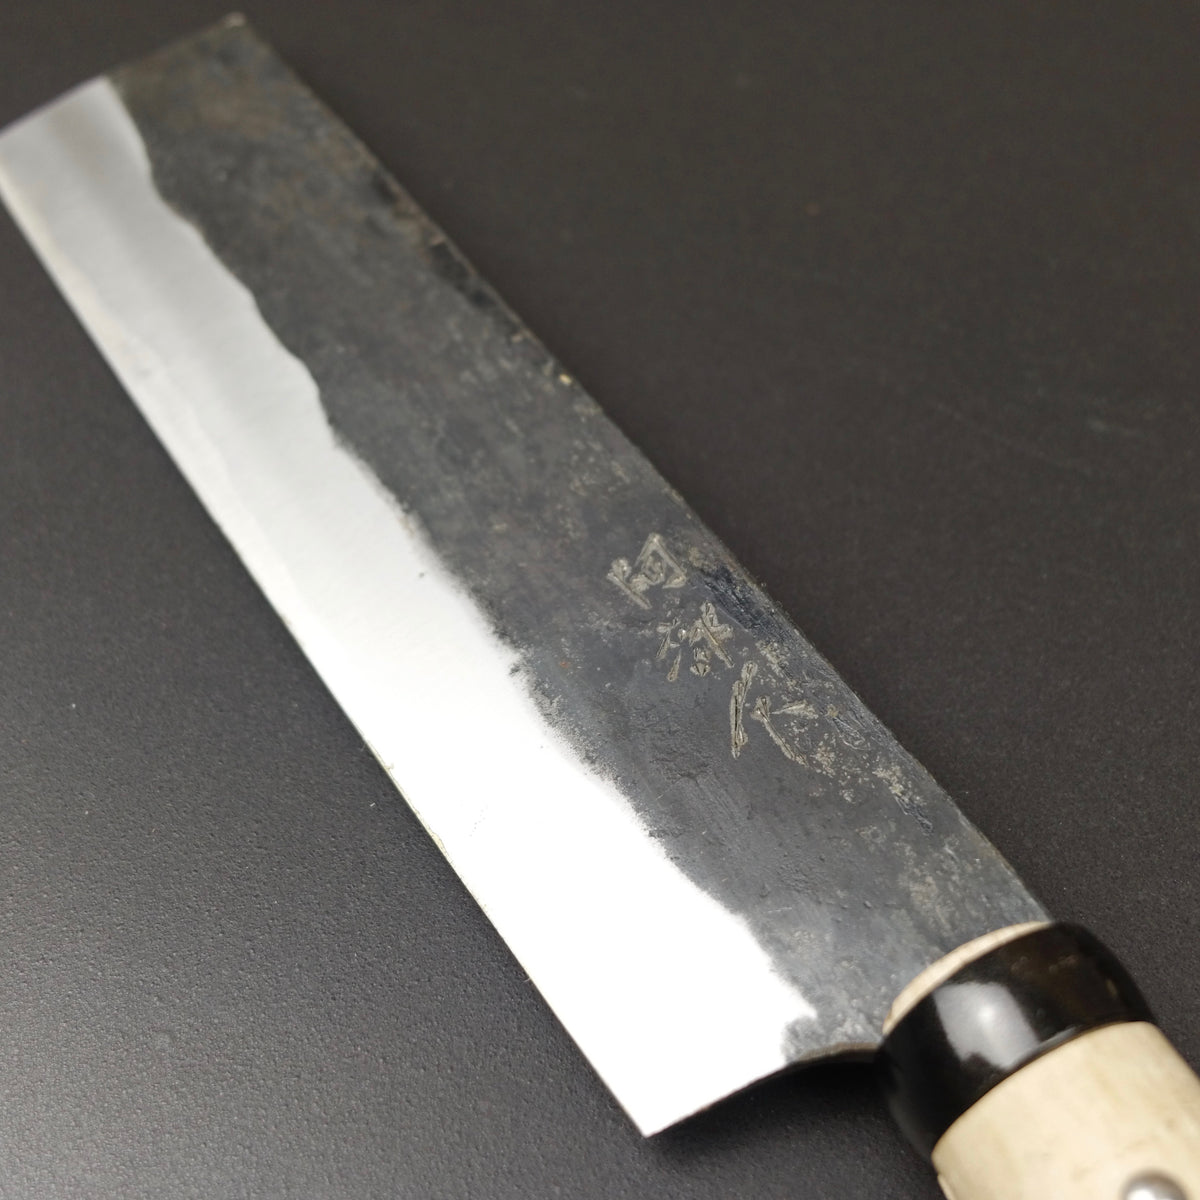 Nata - tool for forest clearance - Shirogami Damascus blade